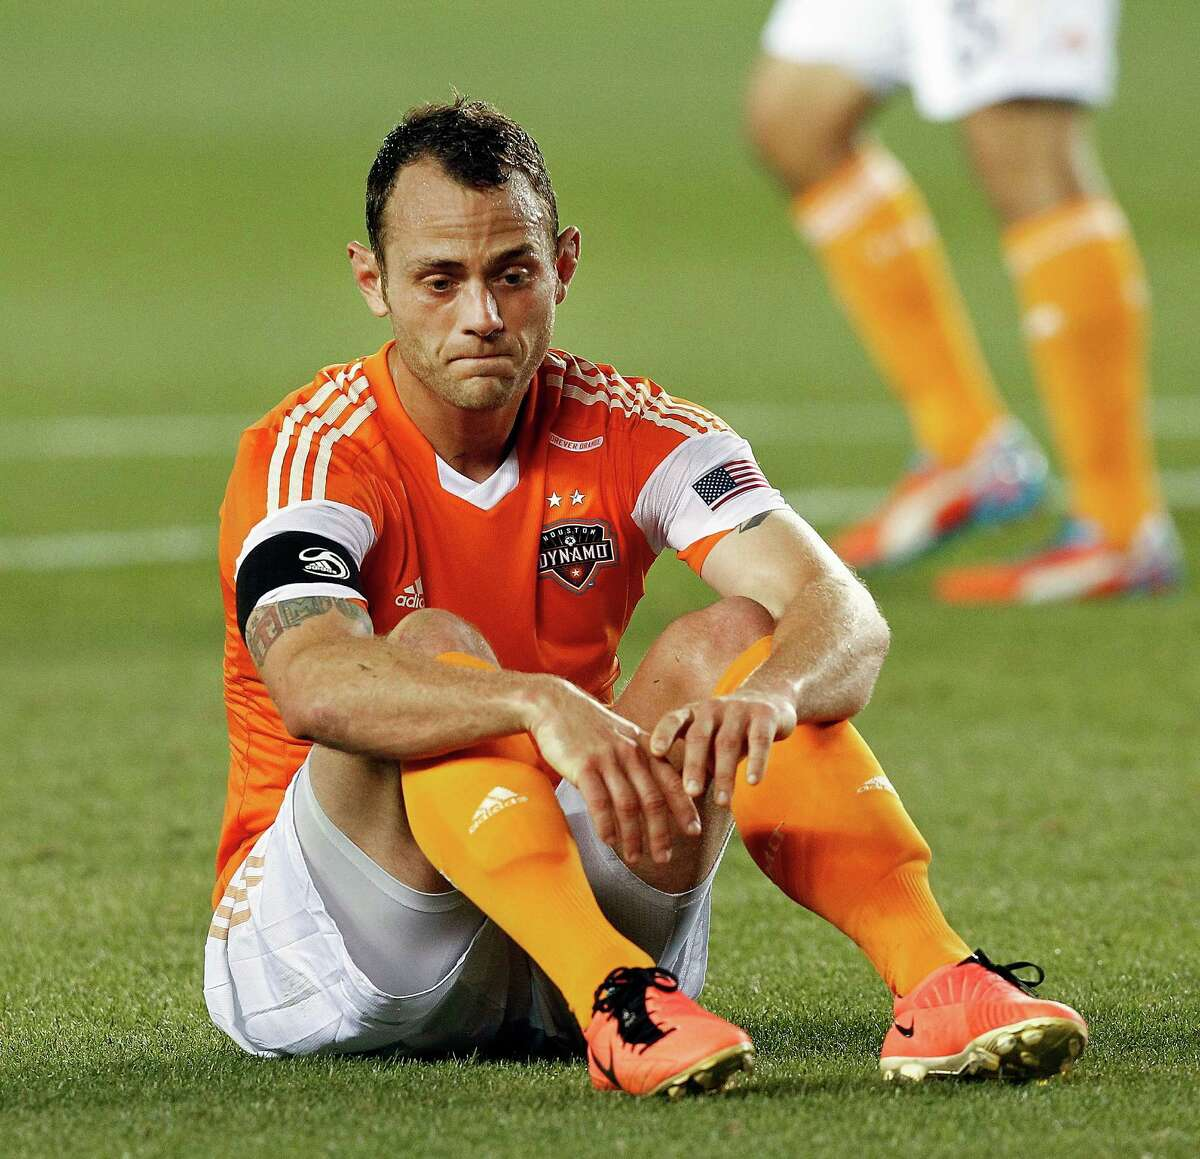 Sporting KC 1, Dynamo 0 Houston Dynamo midfielder Brad Davis #11 sits on the field after missing a scoring opportunity late in the second half against the Sporting KC during a MLS soccer match between the Houston Dynamo and the Sporting KC, Sunday May 12, 2013. Sporting KC defeated the Houston Dynamo 1-0. (Bob Levey/For The Chronicle)